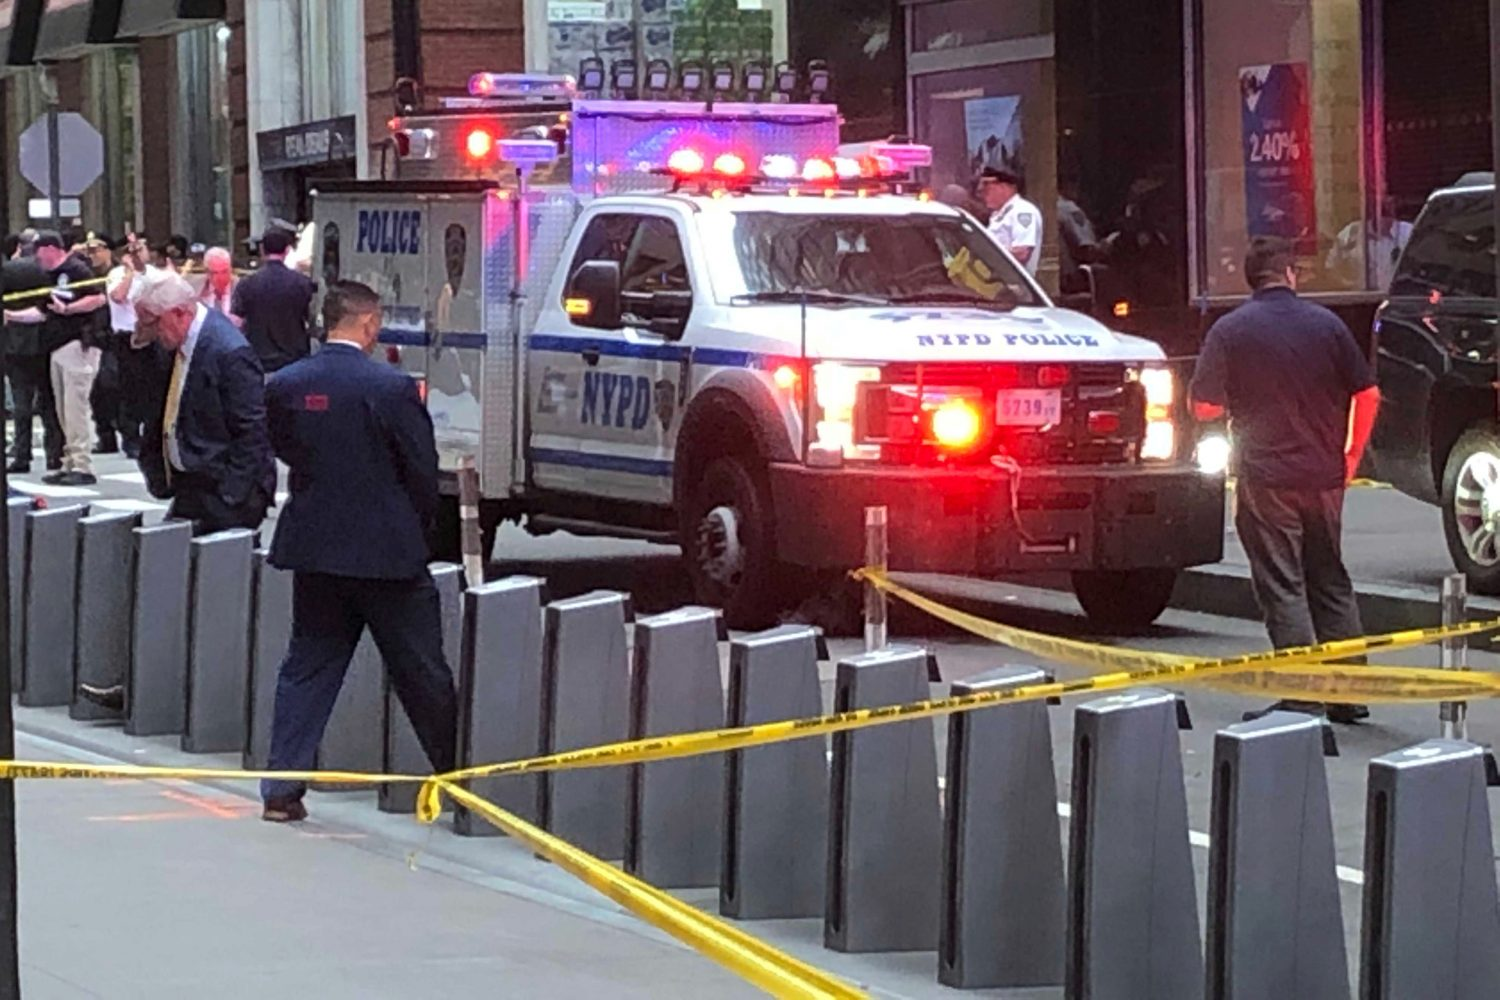 New York City police officers are seen as police said they were investigating two suspicious packages at the Fulton St. subway station in Manhattan, New York, U.S. August 16, 2019. REUTERS/Catherine Koppel